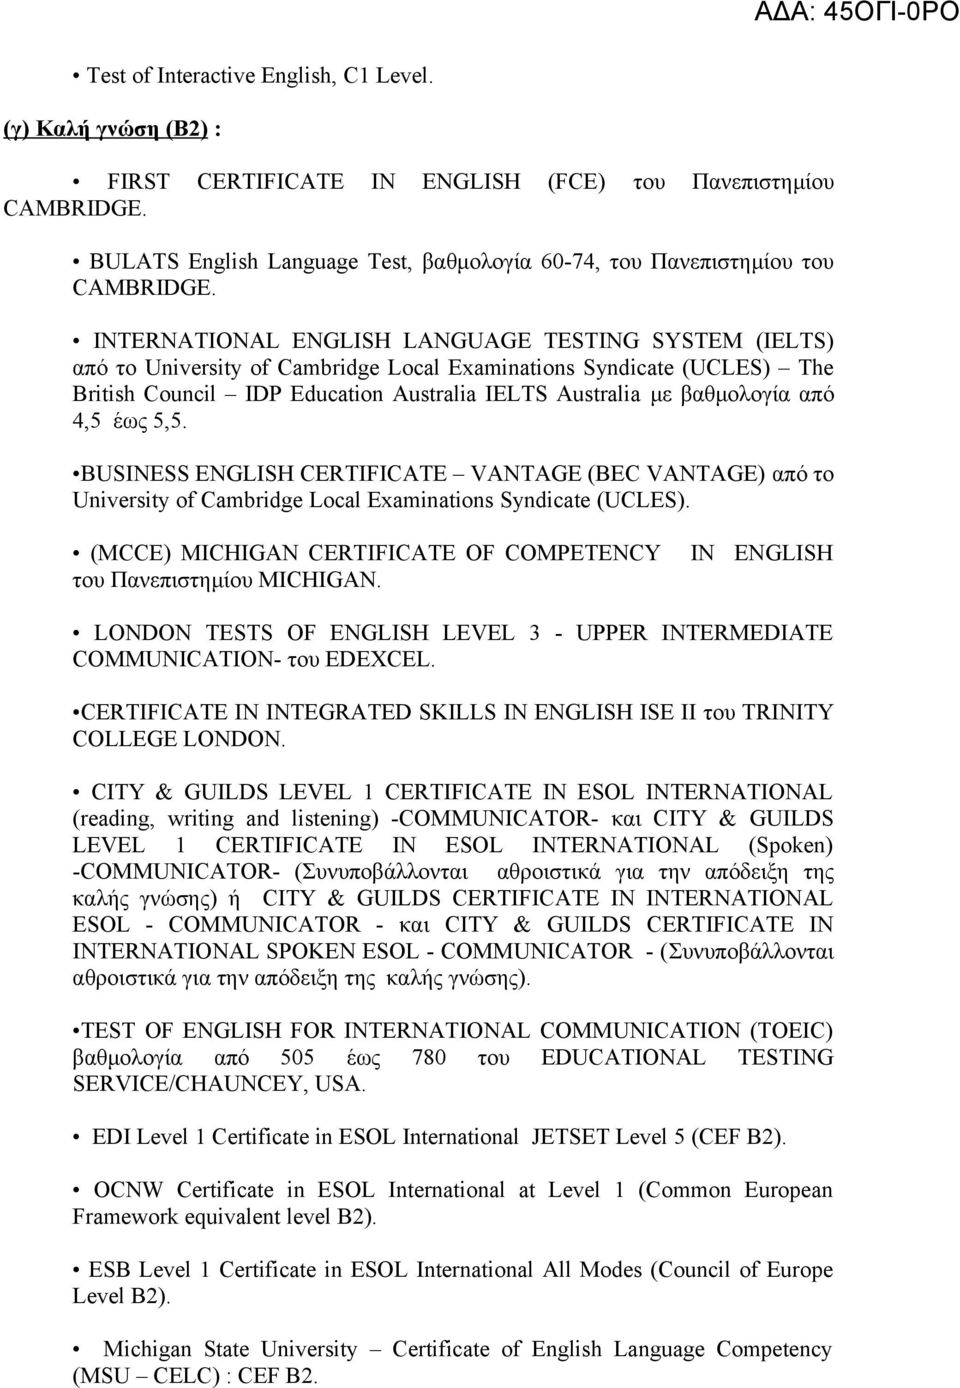 INTERNATIONAL ENGLISH LANGUAGE TESTING SYSTEM (IELTS) από το University of Cambridge Local Examinations Syndicate (UCLES) The British Council IDP Education Australia IELTS Australia με βαθμολογία από